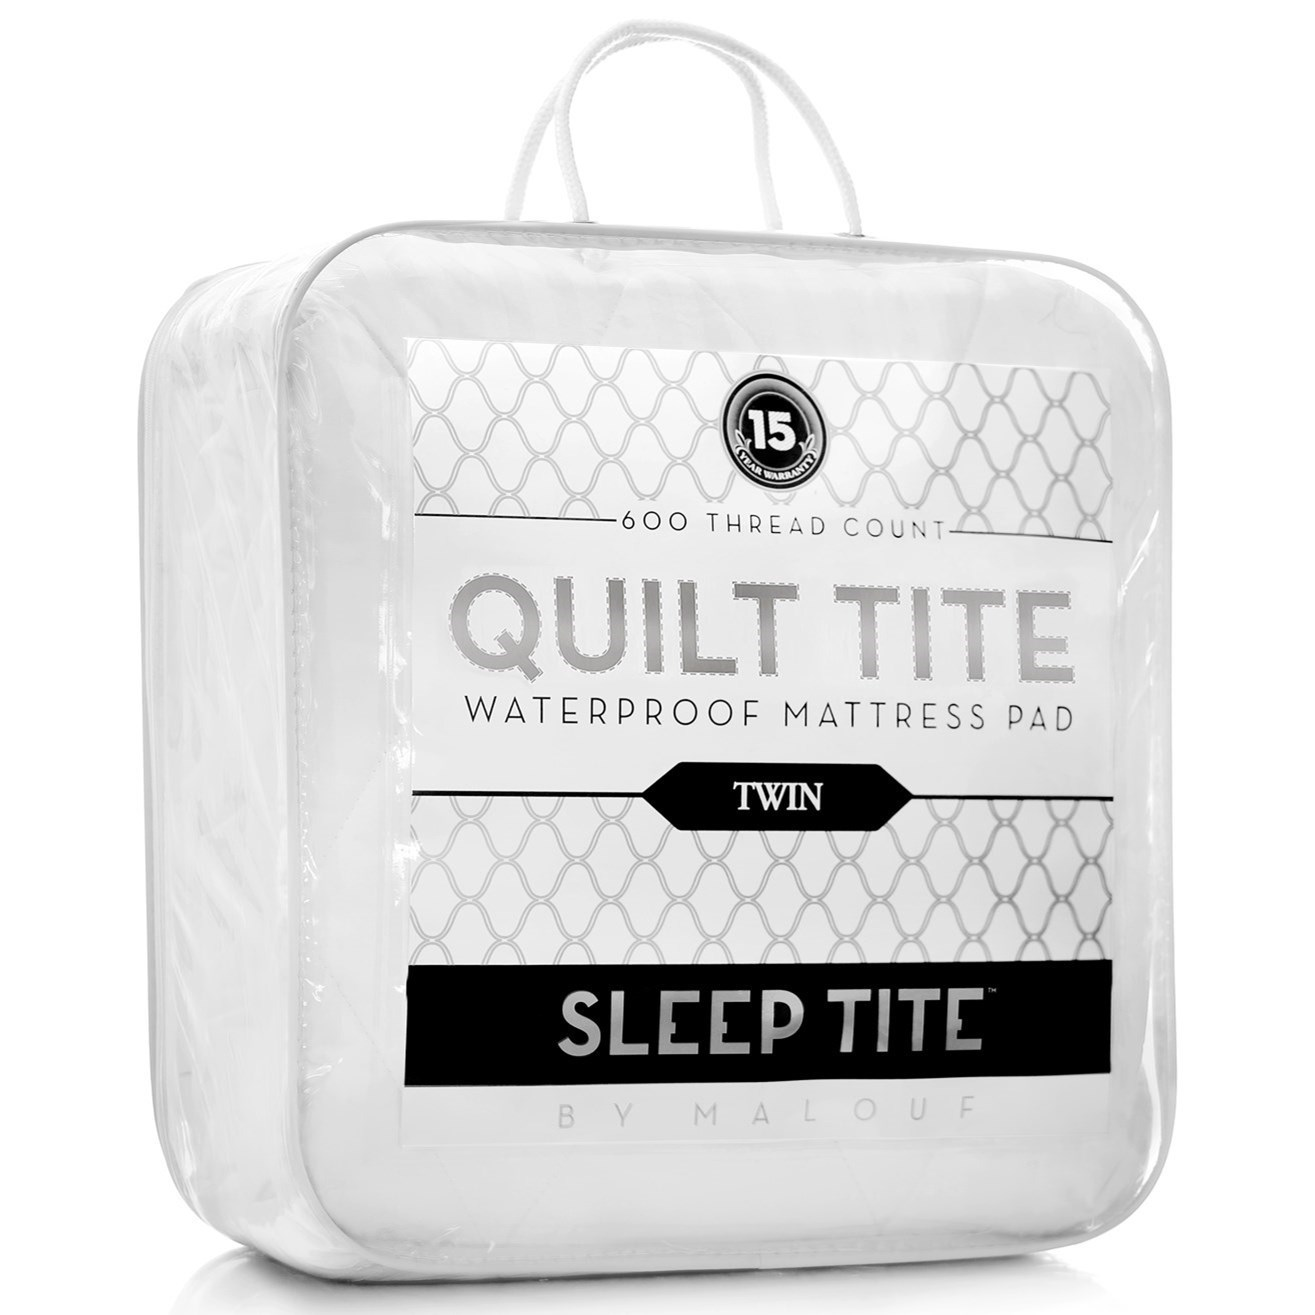 Malouf Sleep Tite Mattress Protector Quilt Tite Queen Quilt Tite Mattress Protector By Malouf At Rooms And Rest